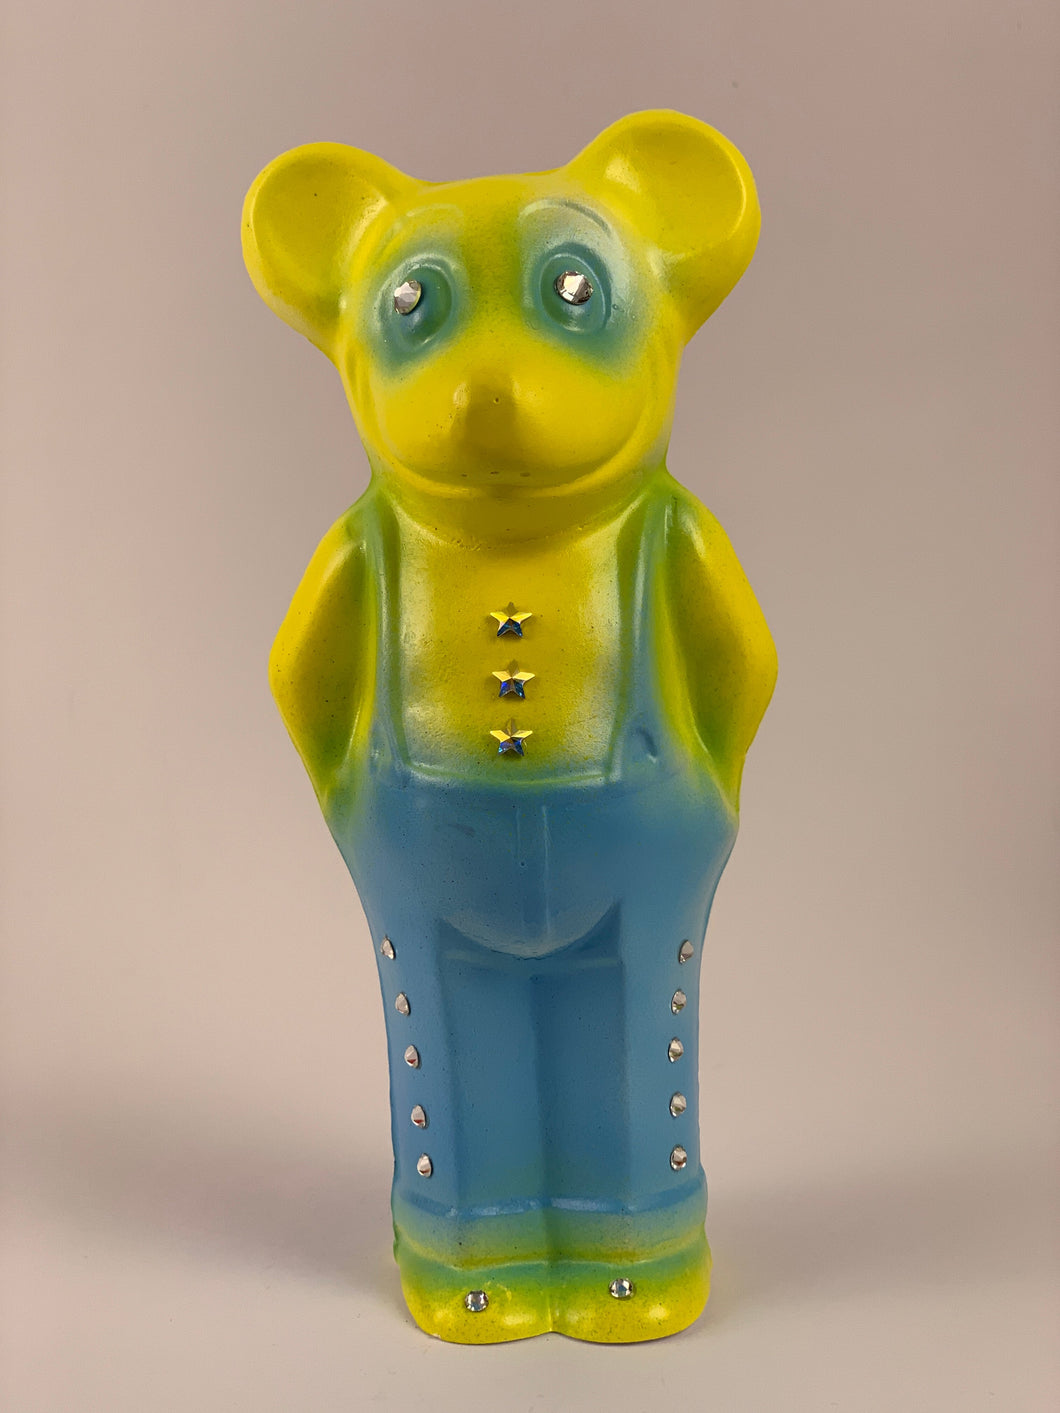 Mister Mouse Chalkware: Blue and Yellow with Stars